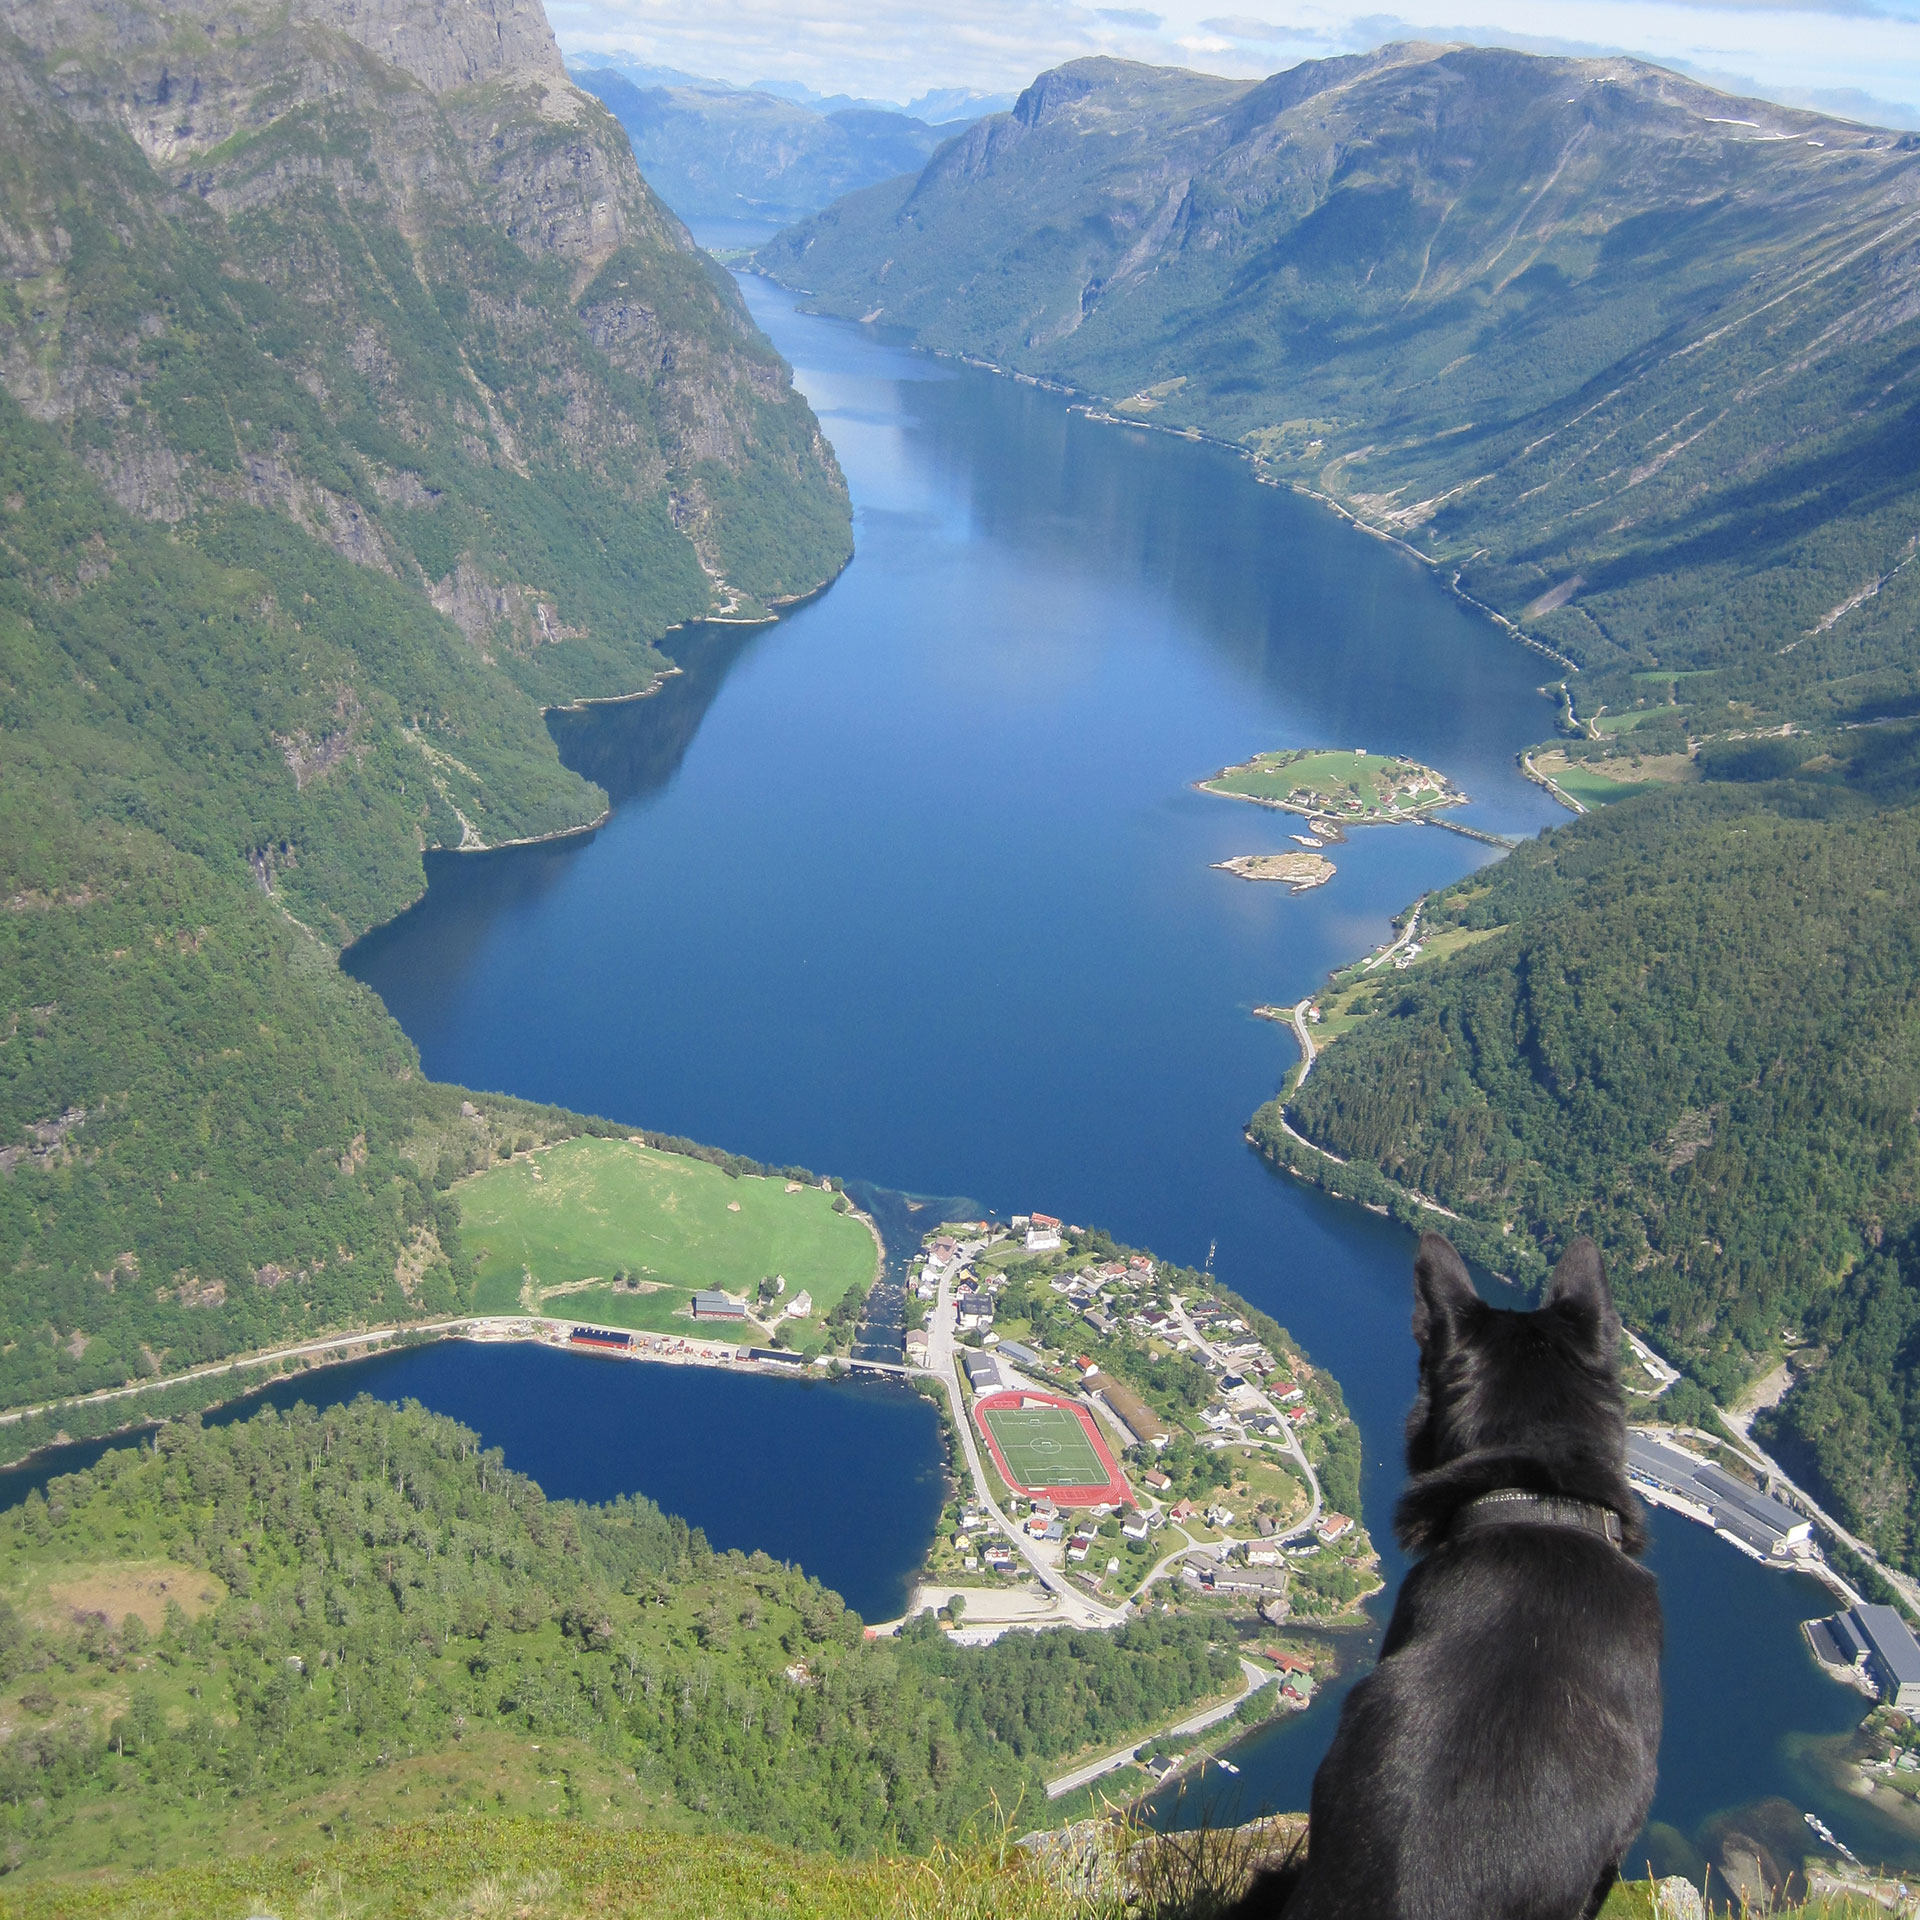 Dog looking at the fjords.